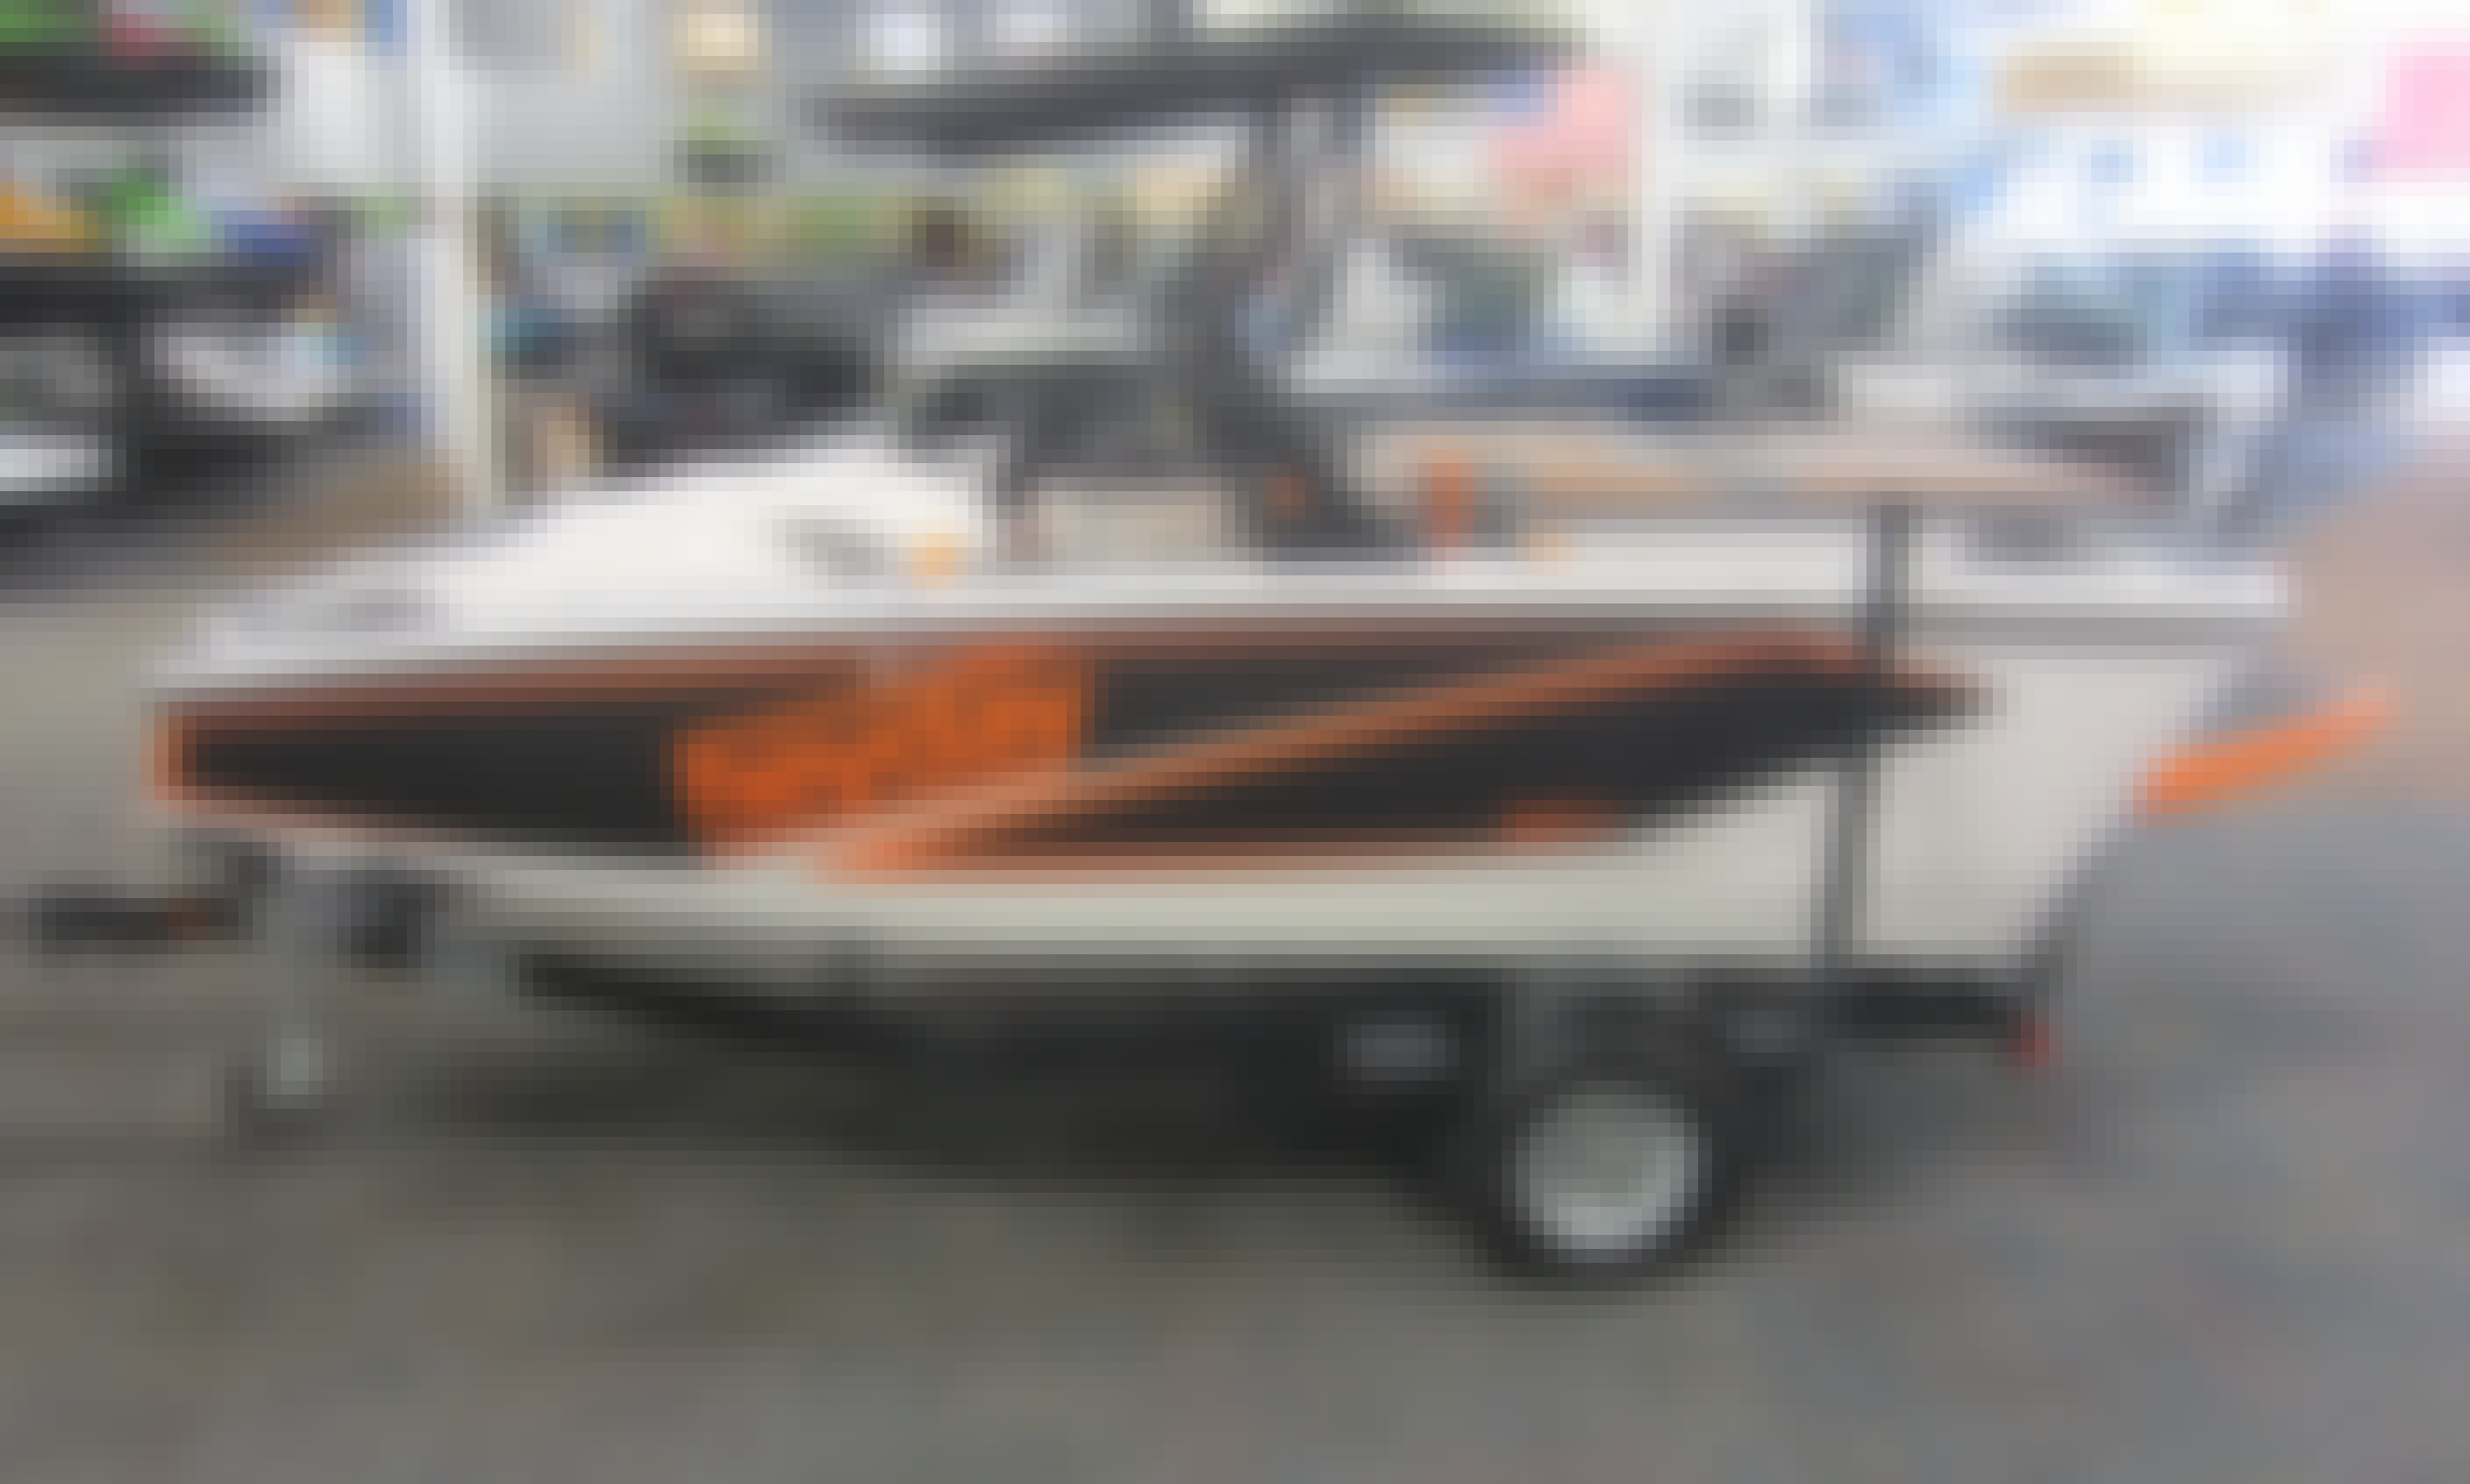 2018 Heyday WT-1 Surfboat - All gear included